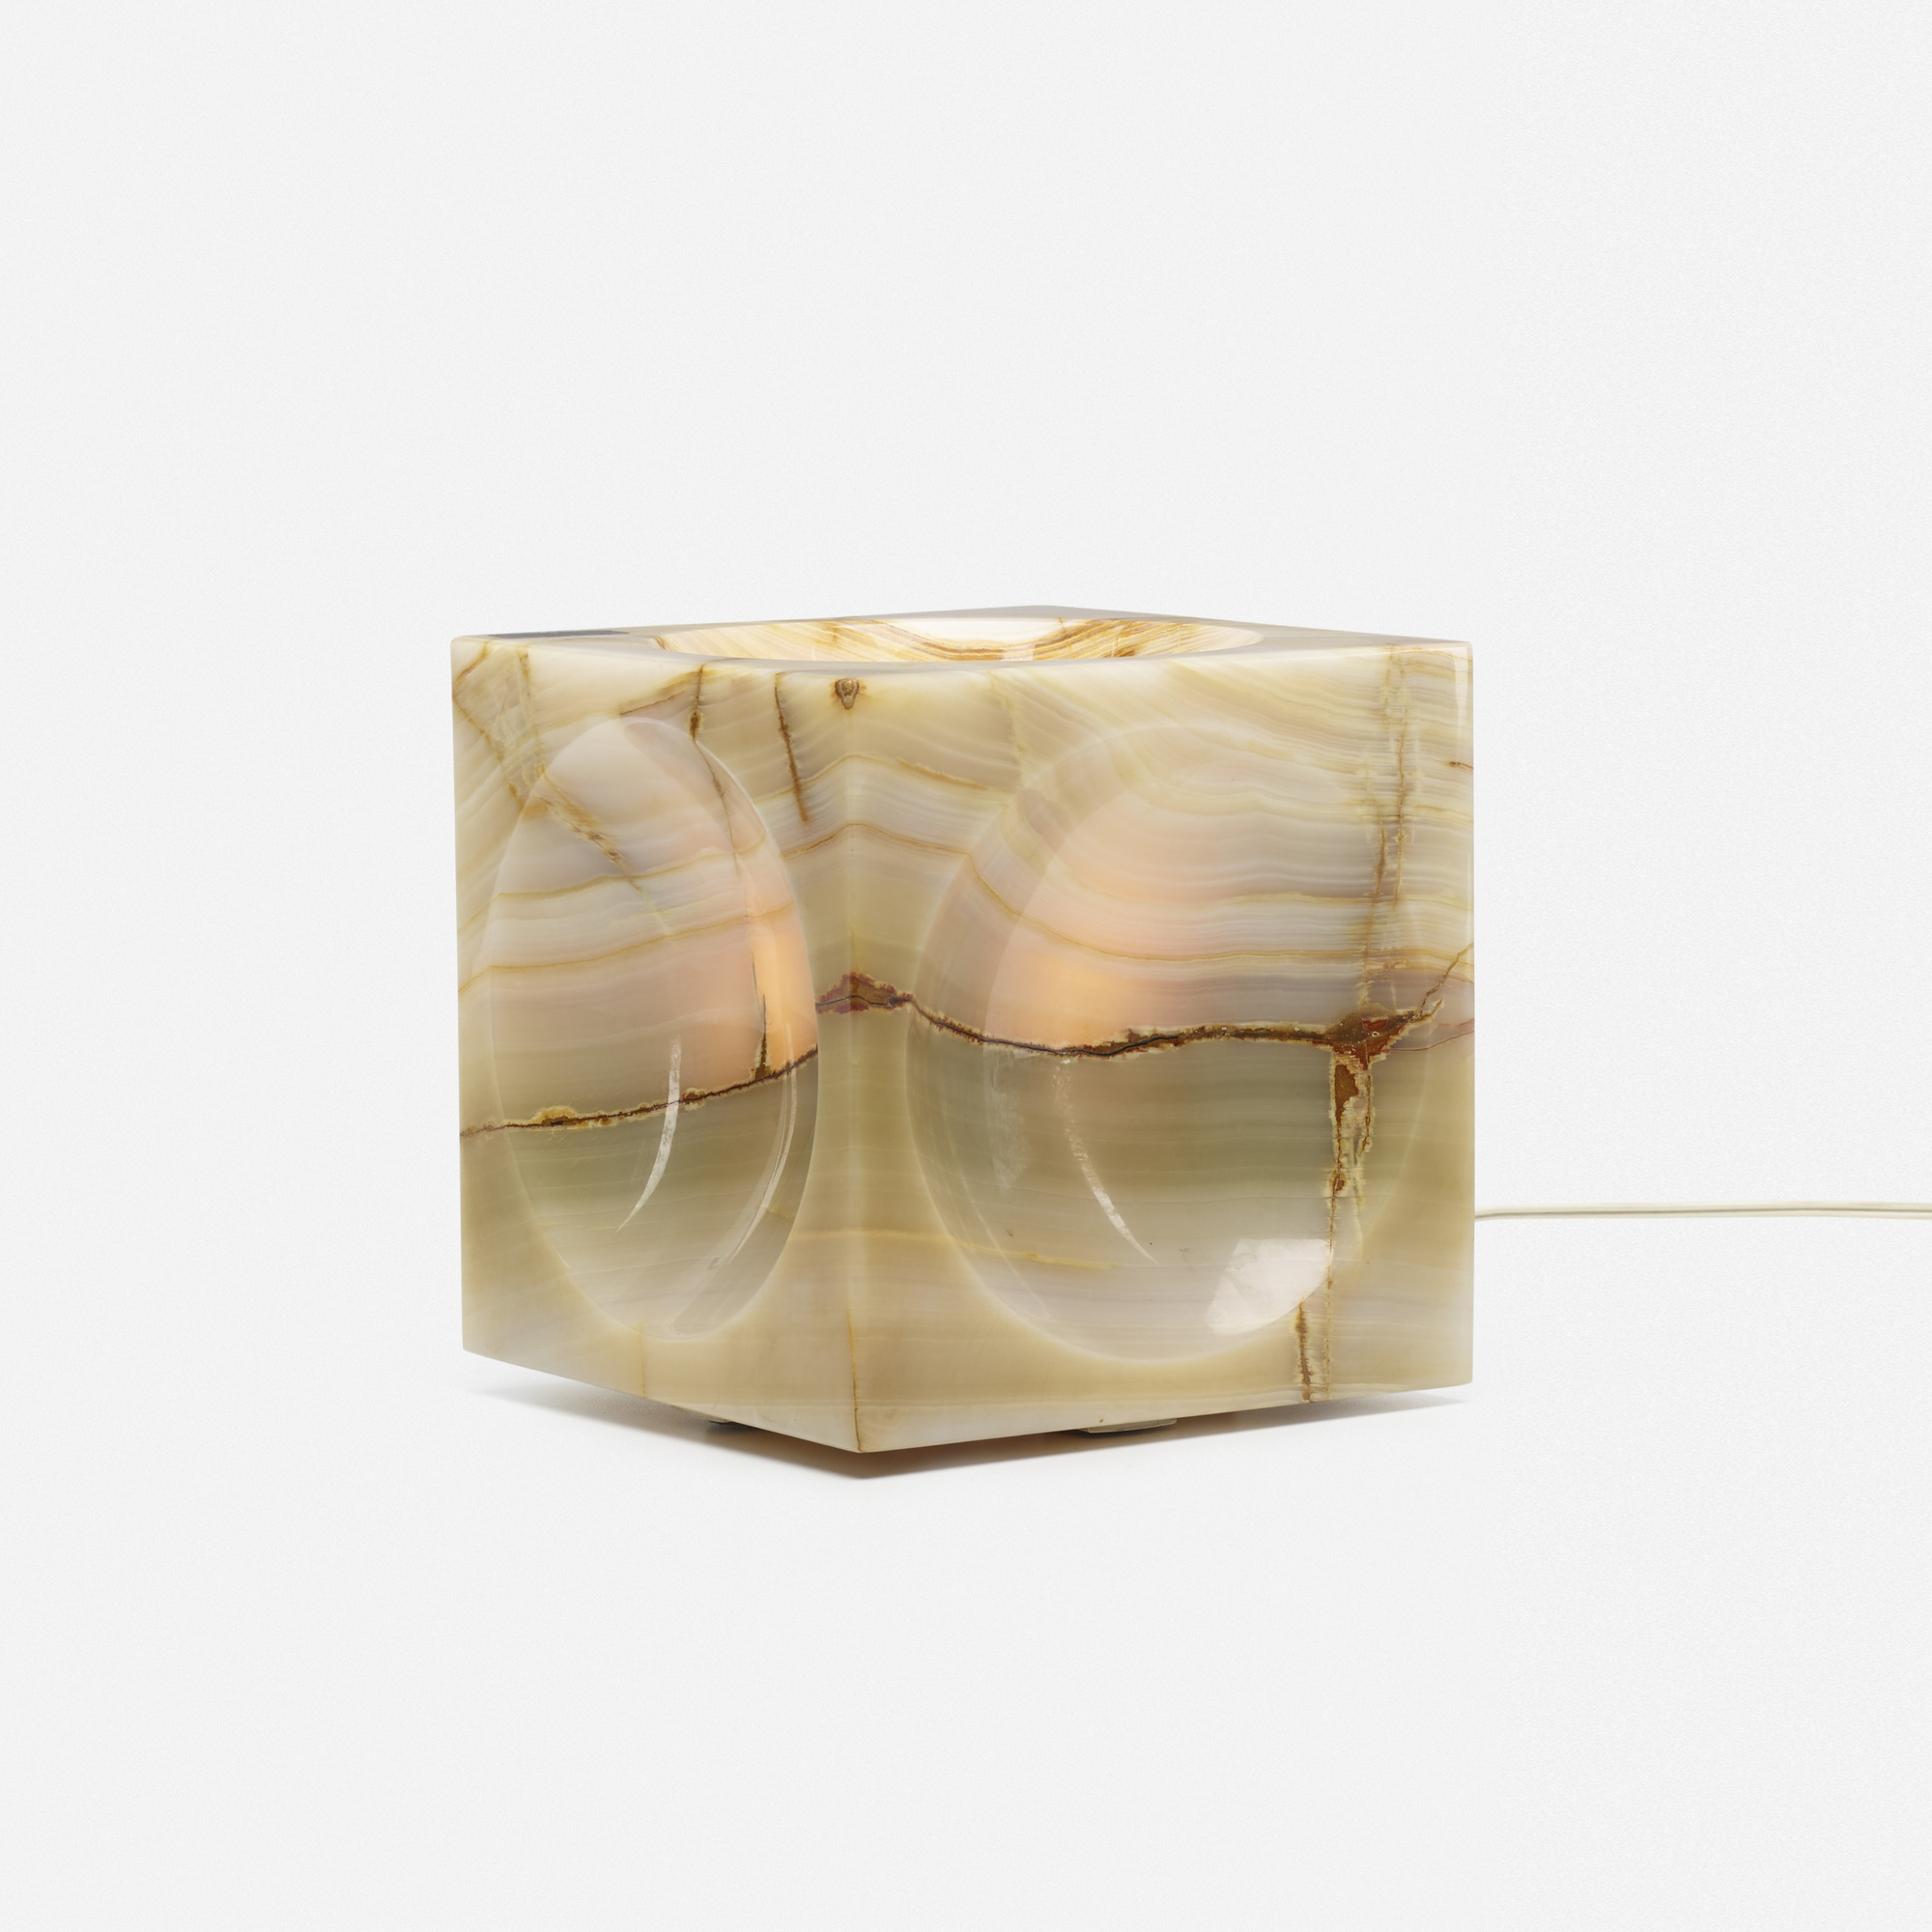 296: Angelo Mangiarotti / Cube table lamp (1 of 3)